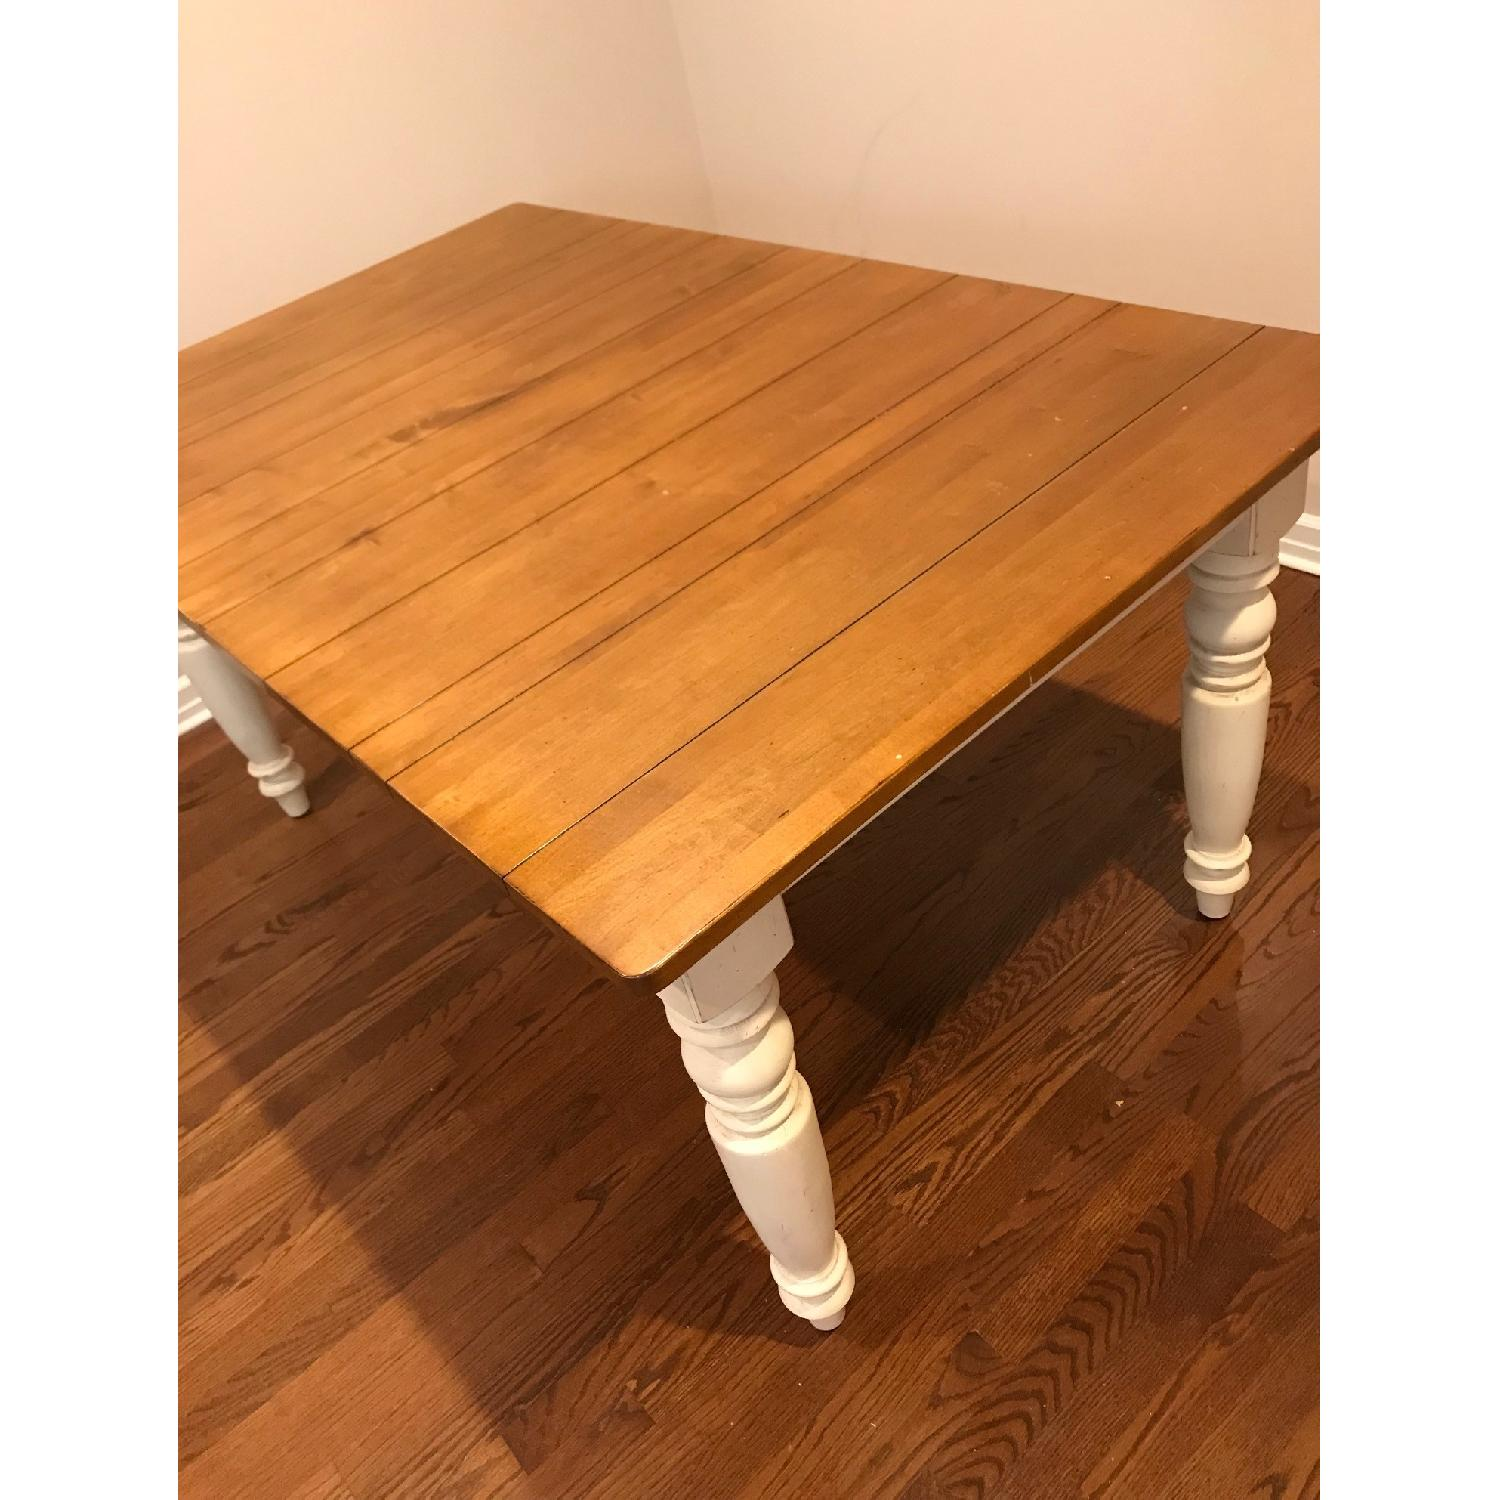 Ethan Allen Miller Dining Table - image-3